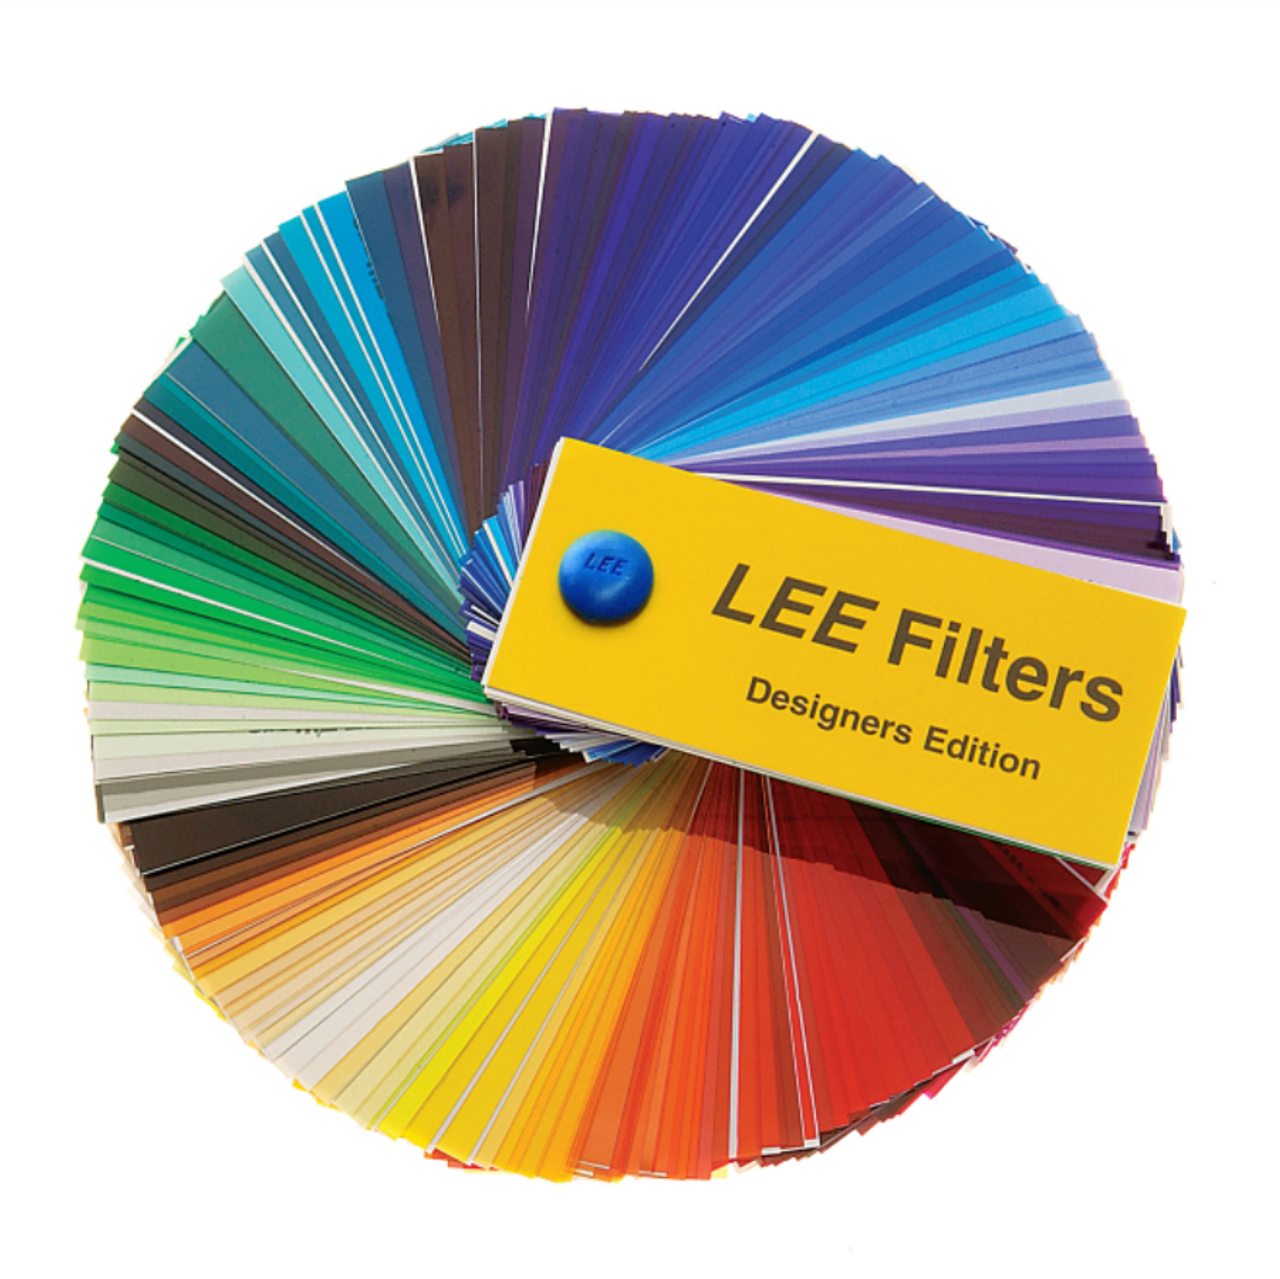 Lee Filters Swatch Book Designers Edition